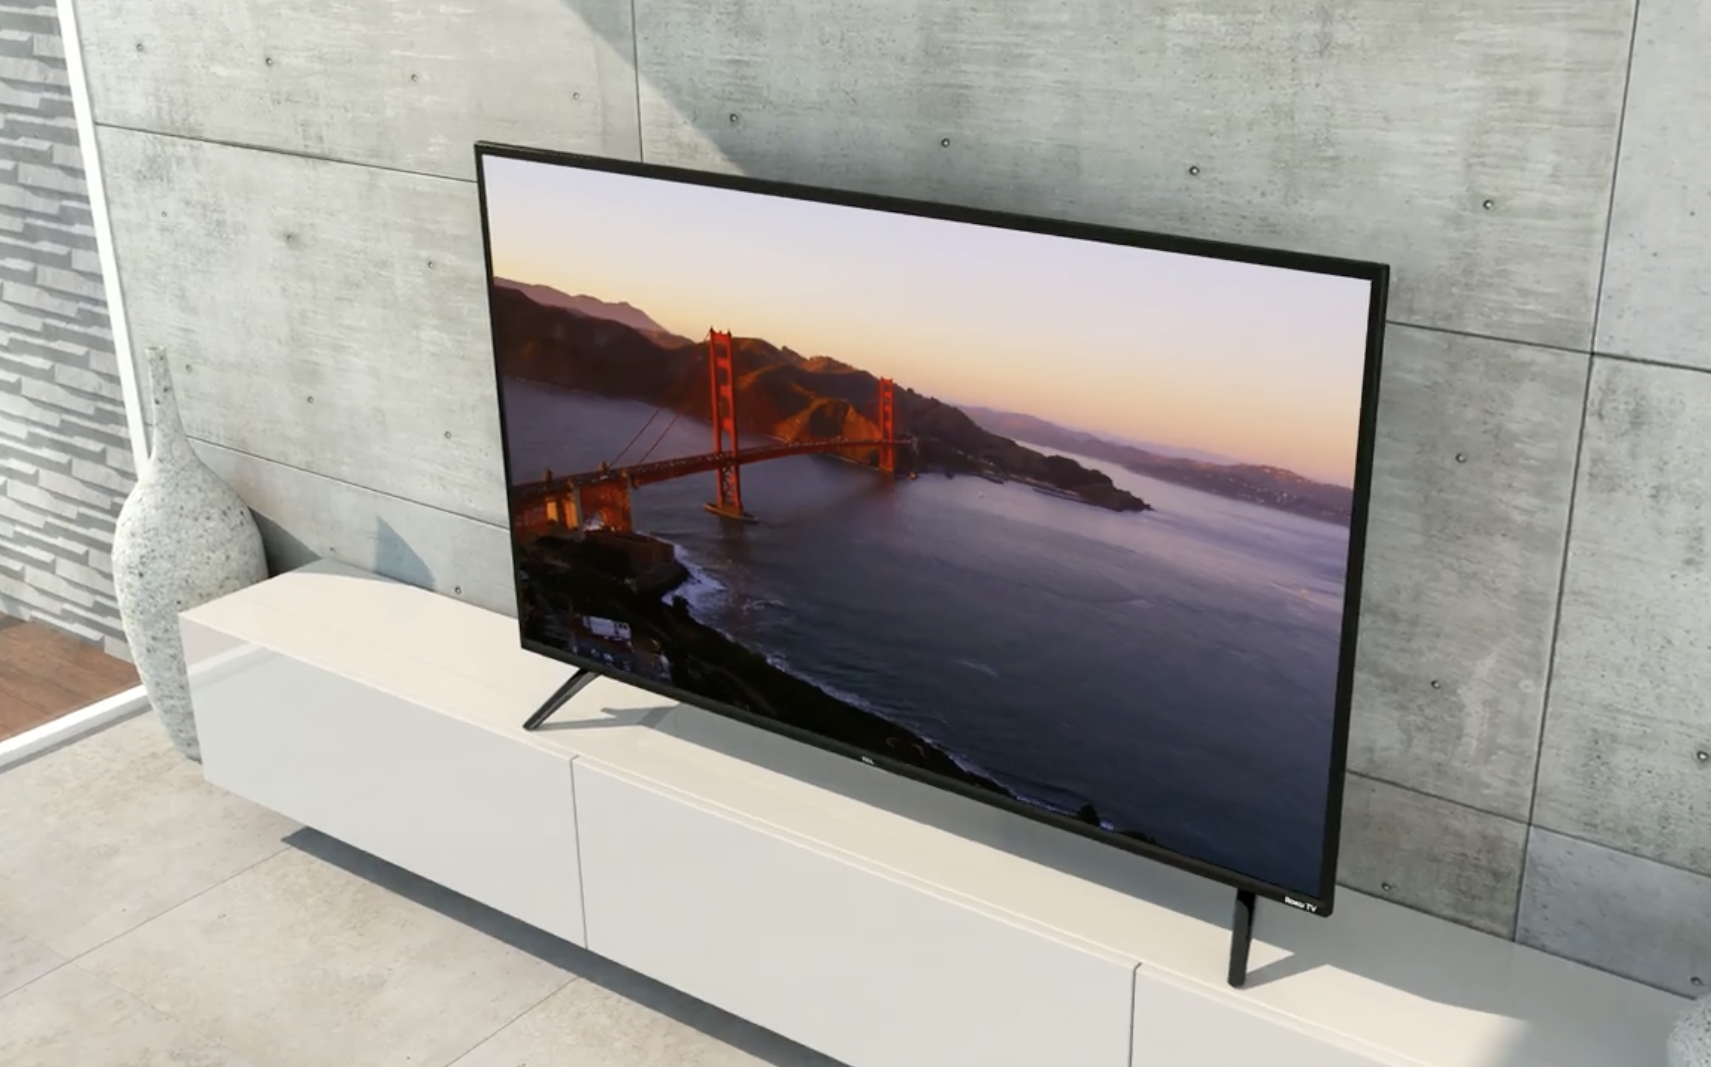 50-inch TCL 4K TV Series 4